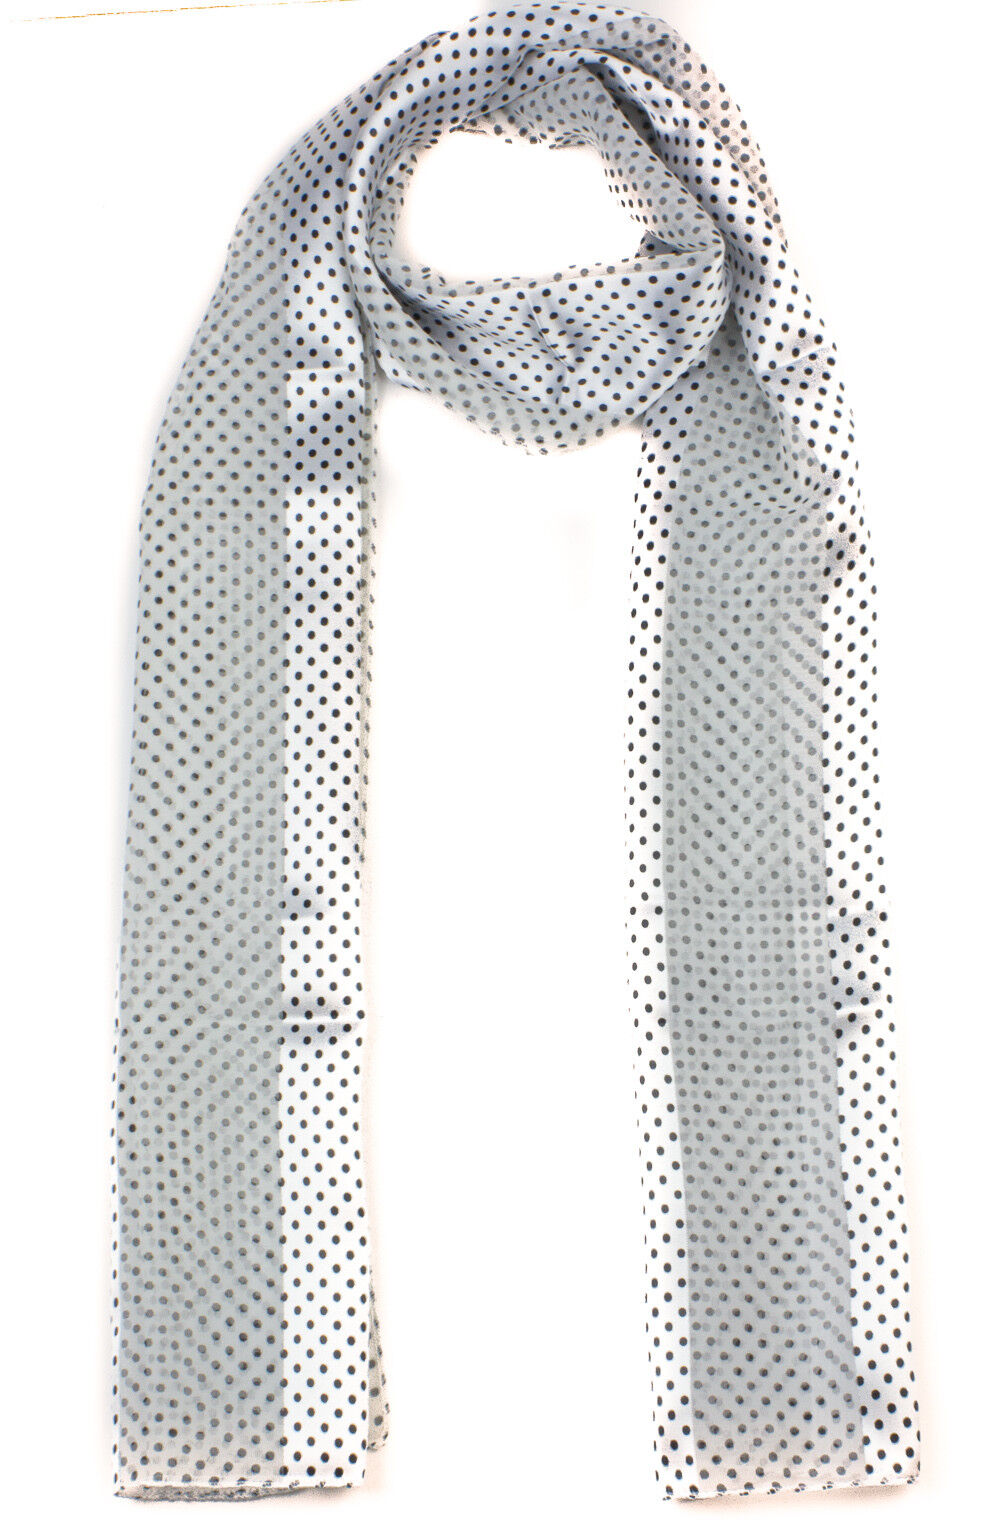 Medium Polka Dot Scarf Long Satin Chiffon Neck Wrap Ladies Dotted scarf Small